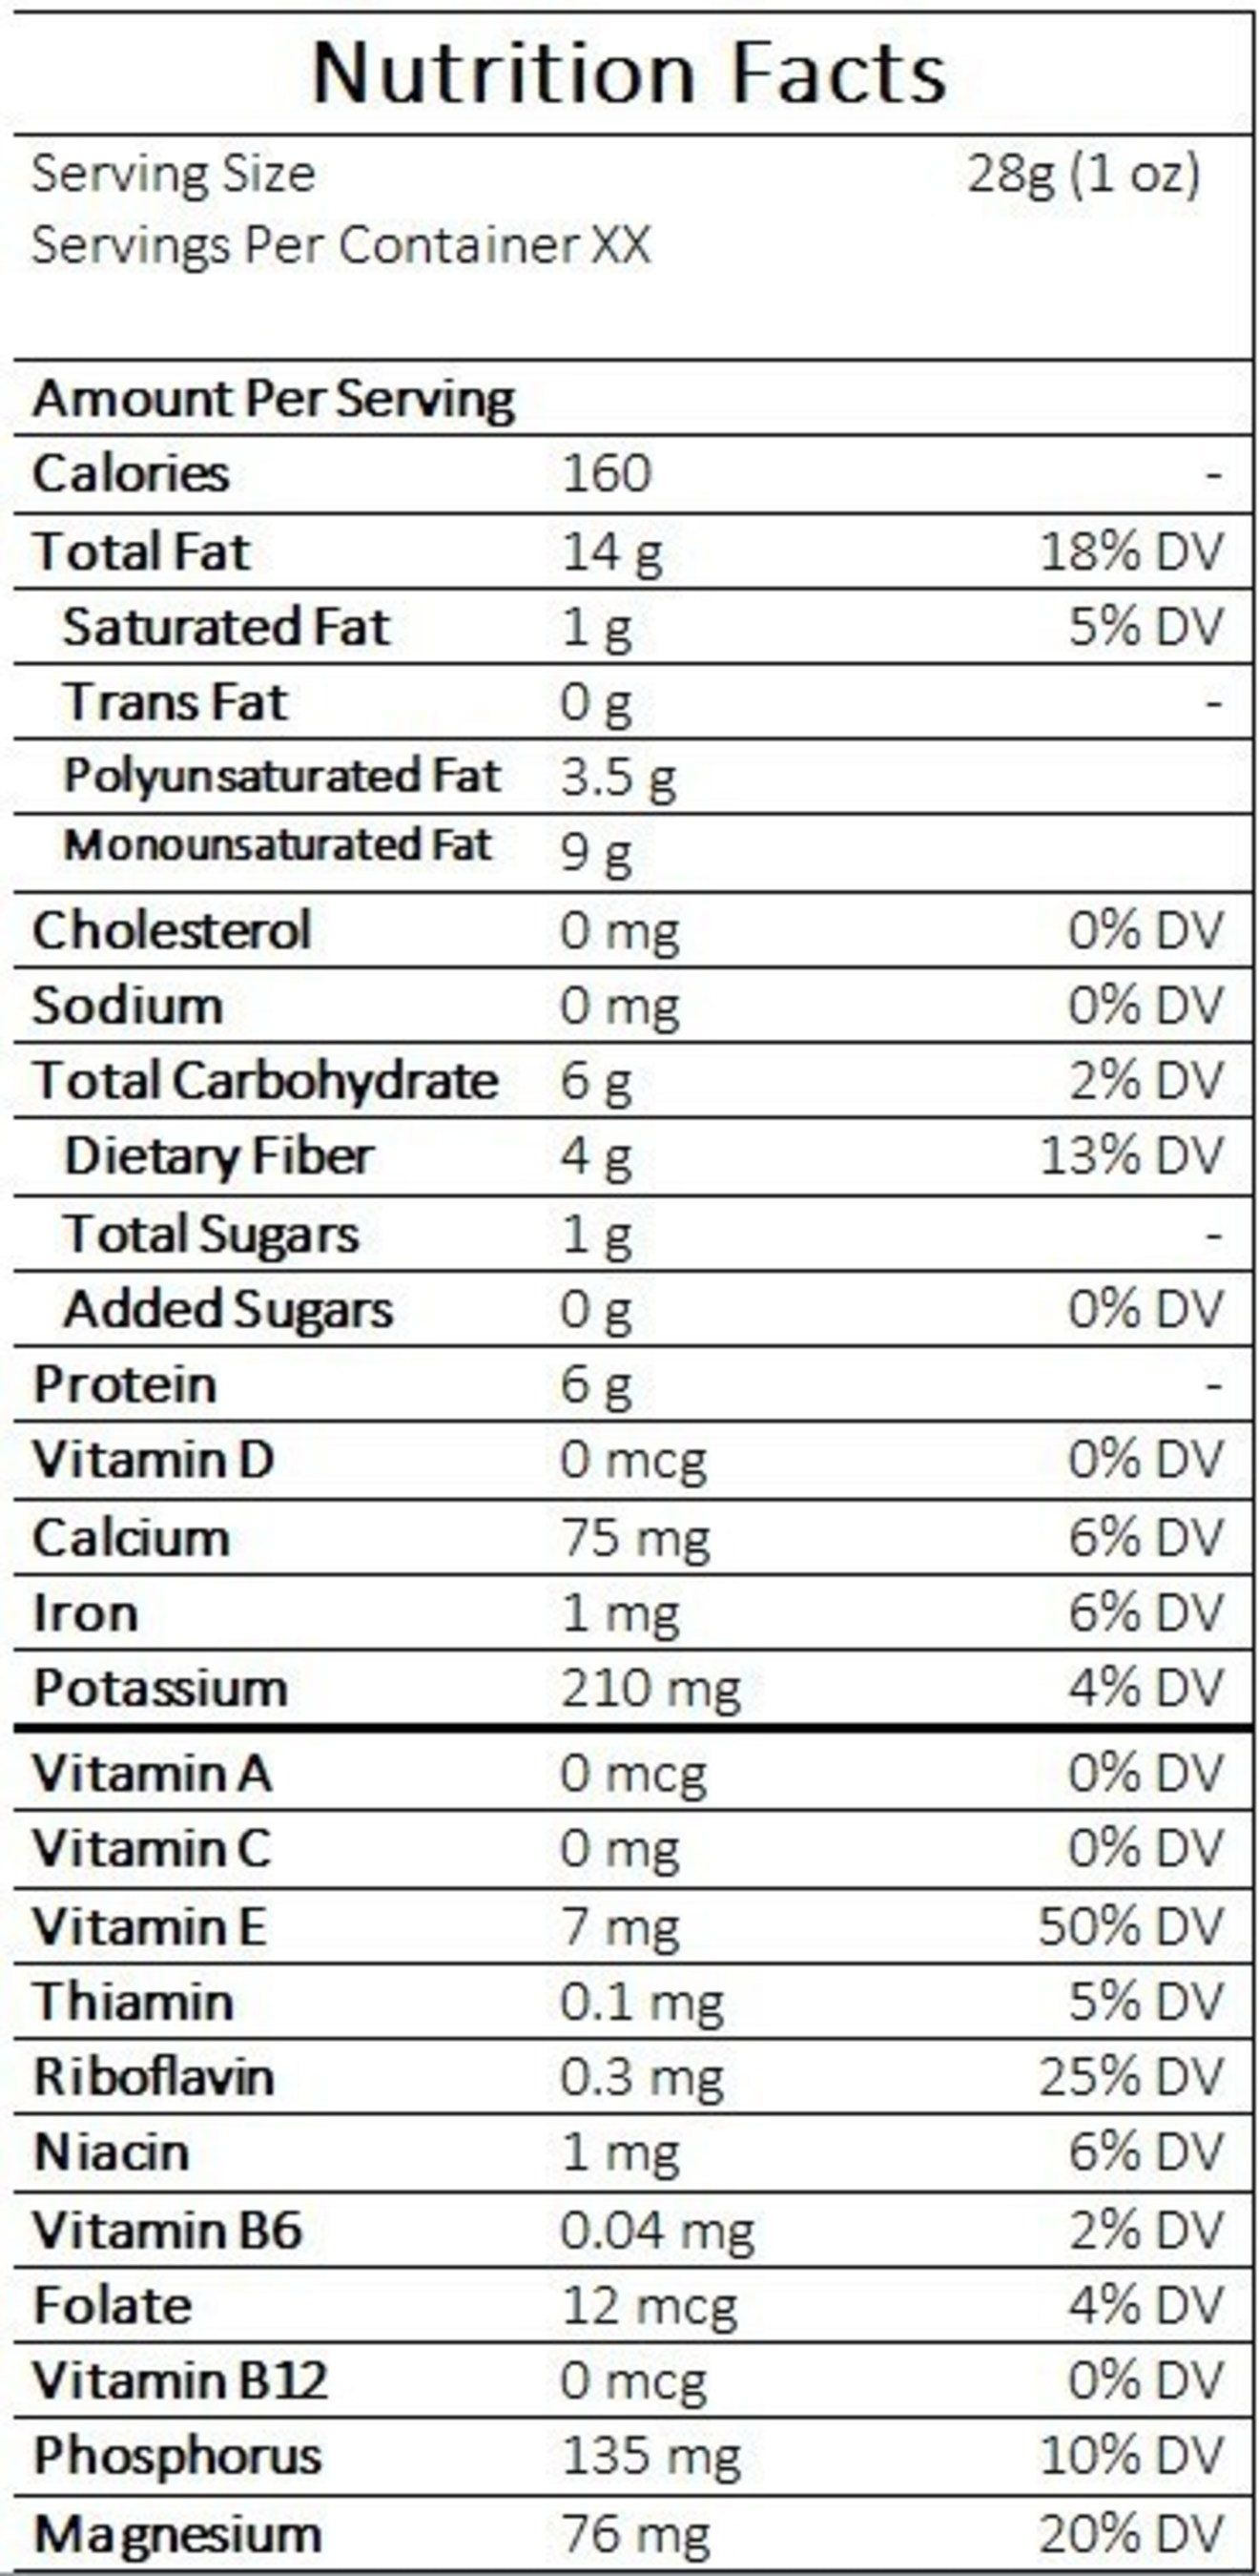 Nutrition Facts Label for Almonds